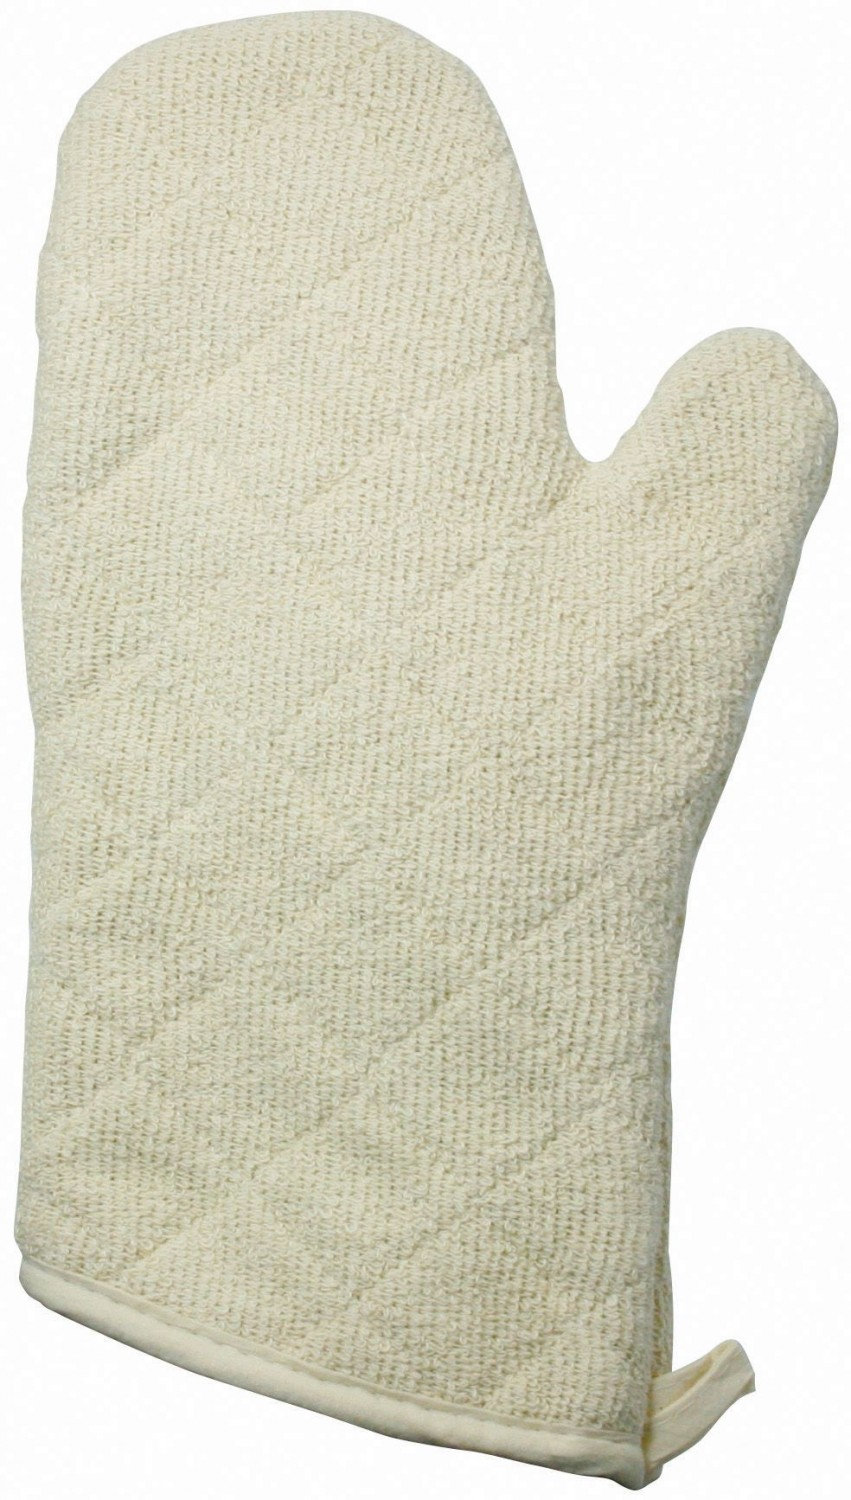 Winco OMT-13 Terry Mitt Silicone Lining